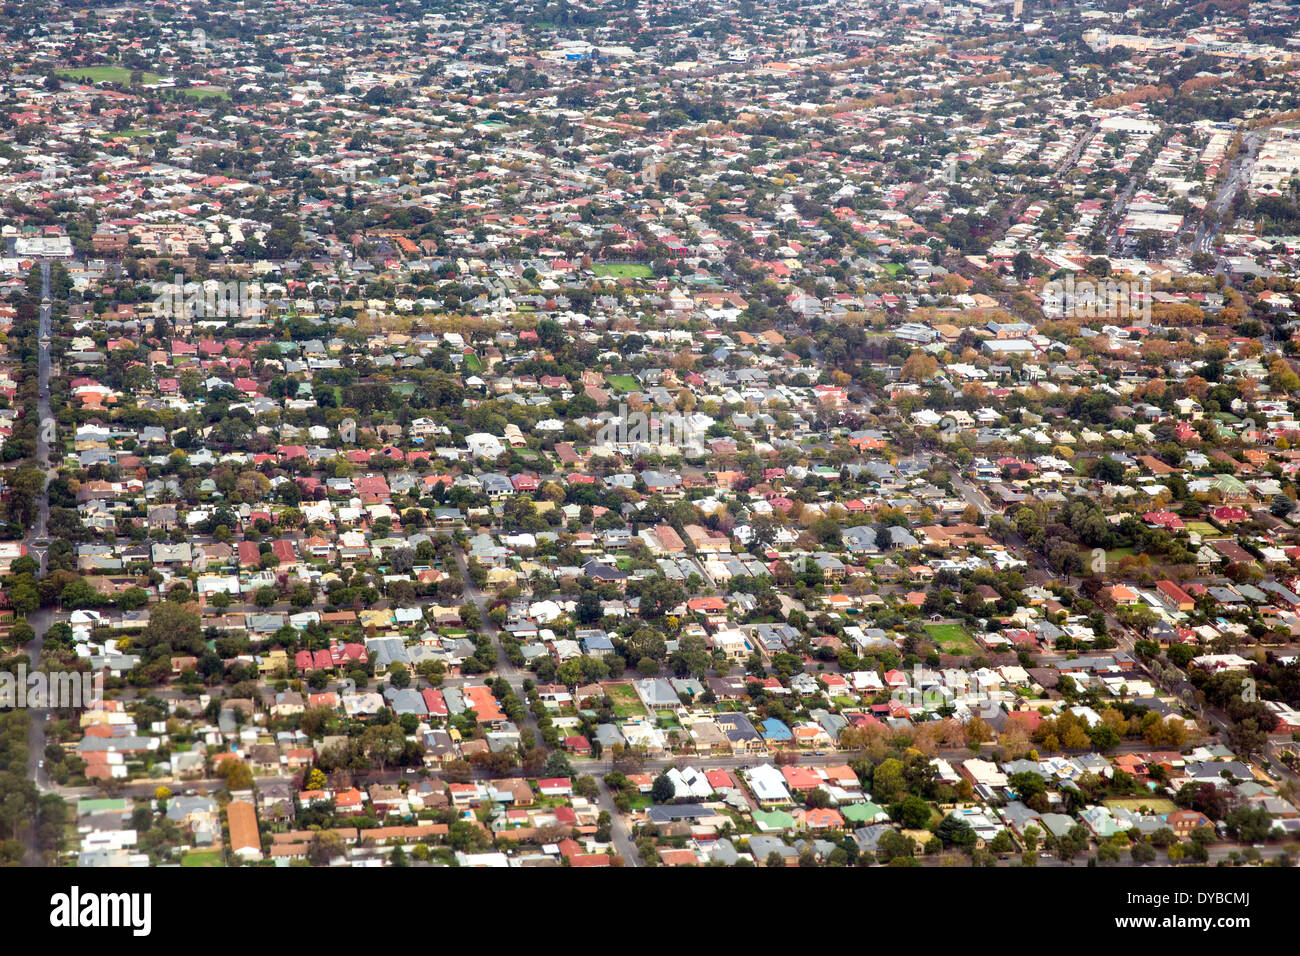 Aerial view of the northern suburbs of Adelaide Australia - Stock Image